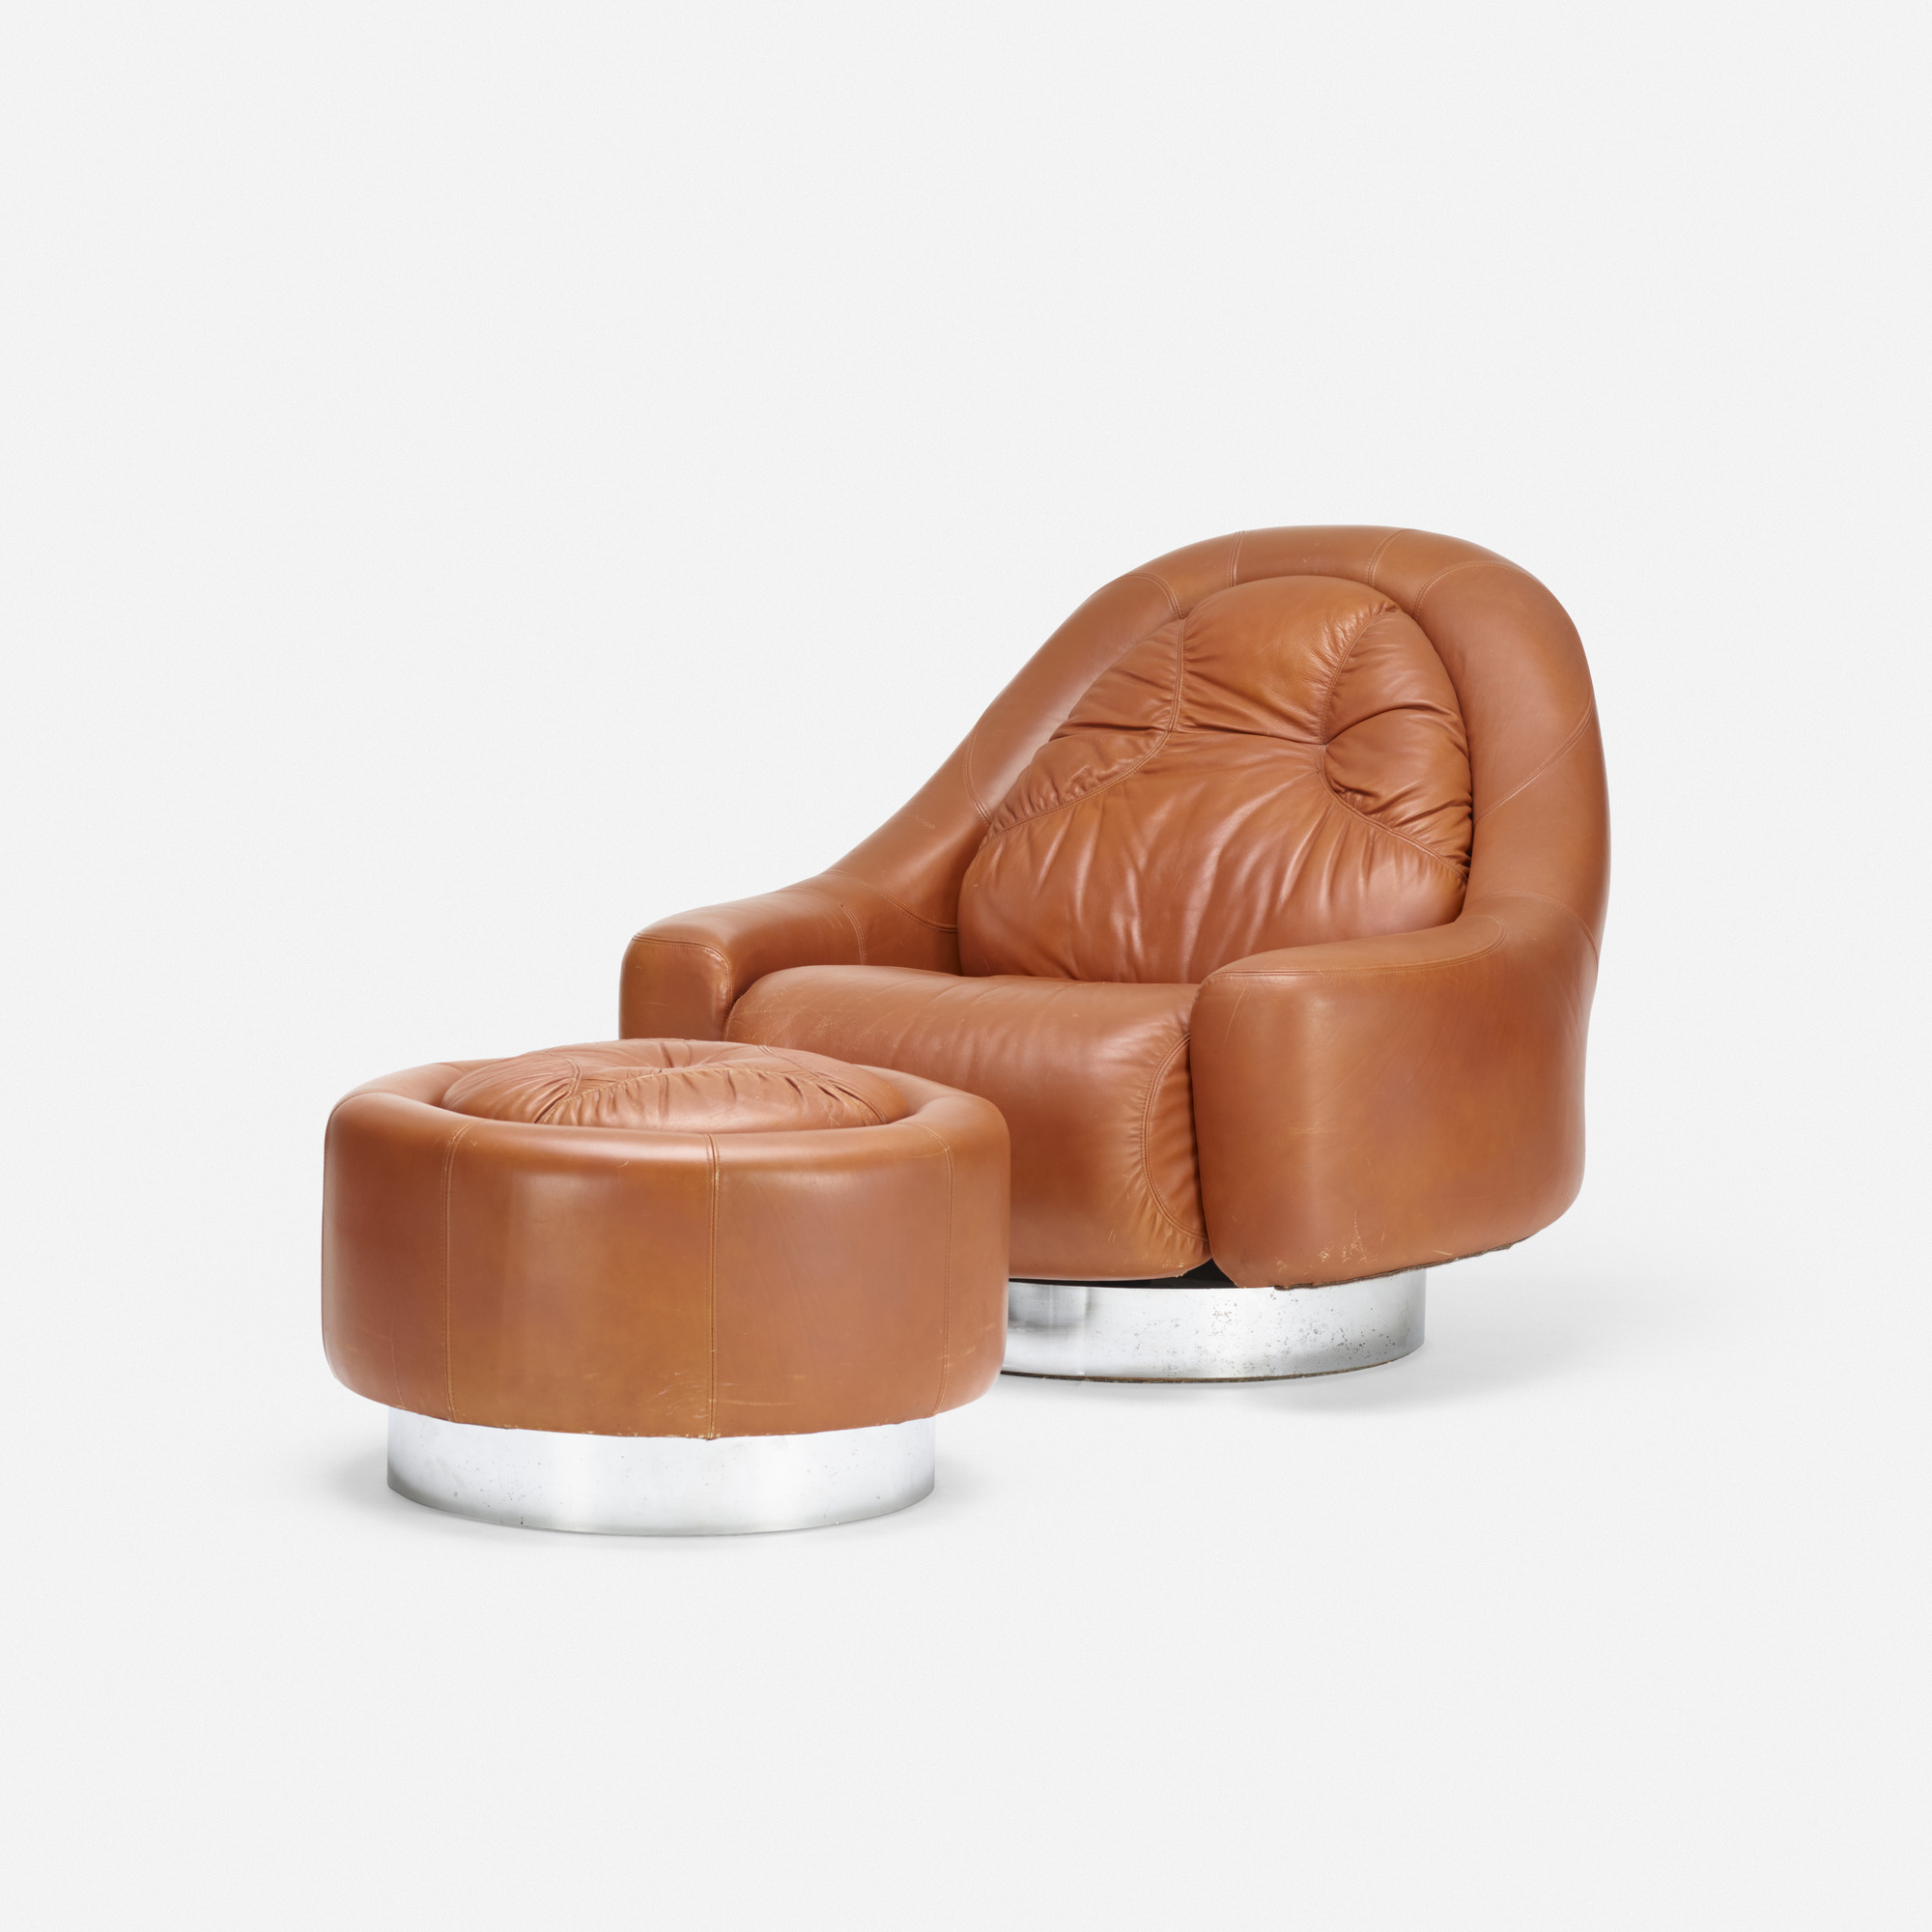 226: Guido Faleschini / lounge chair and ottoman (1 of 2)